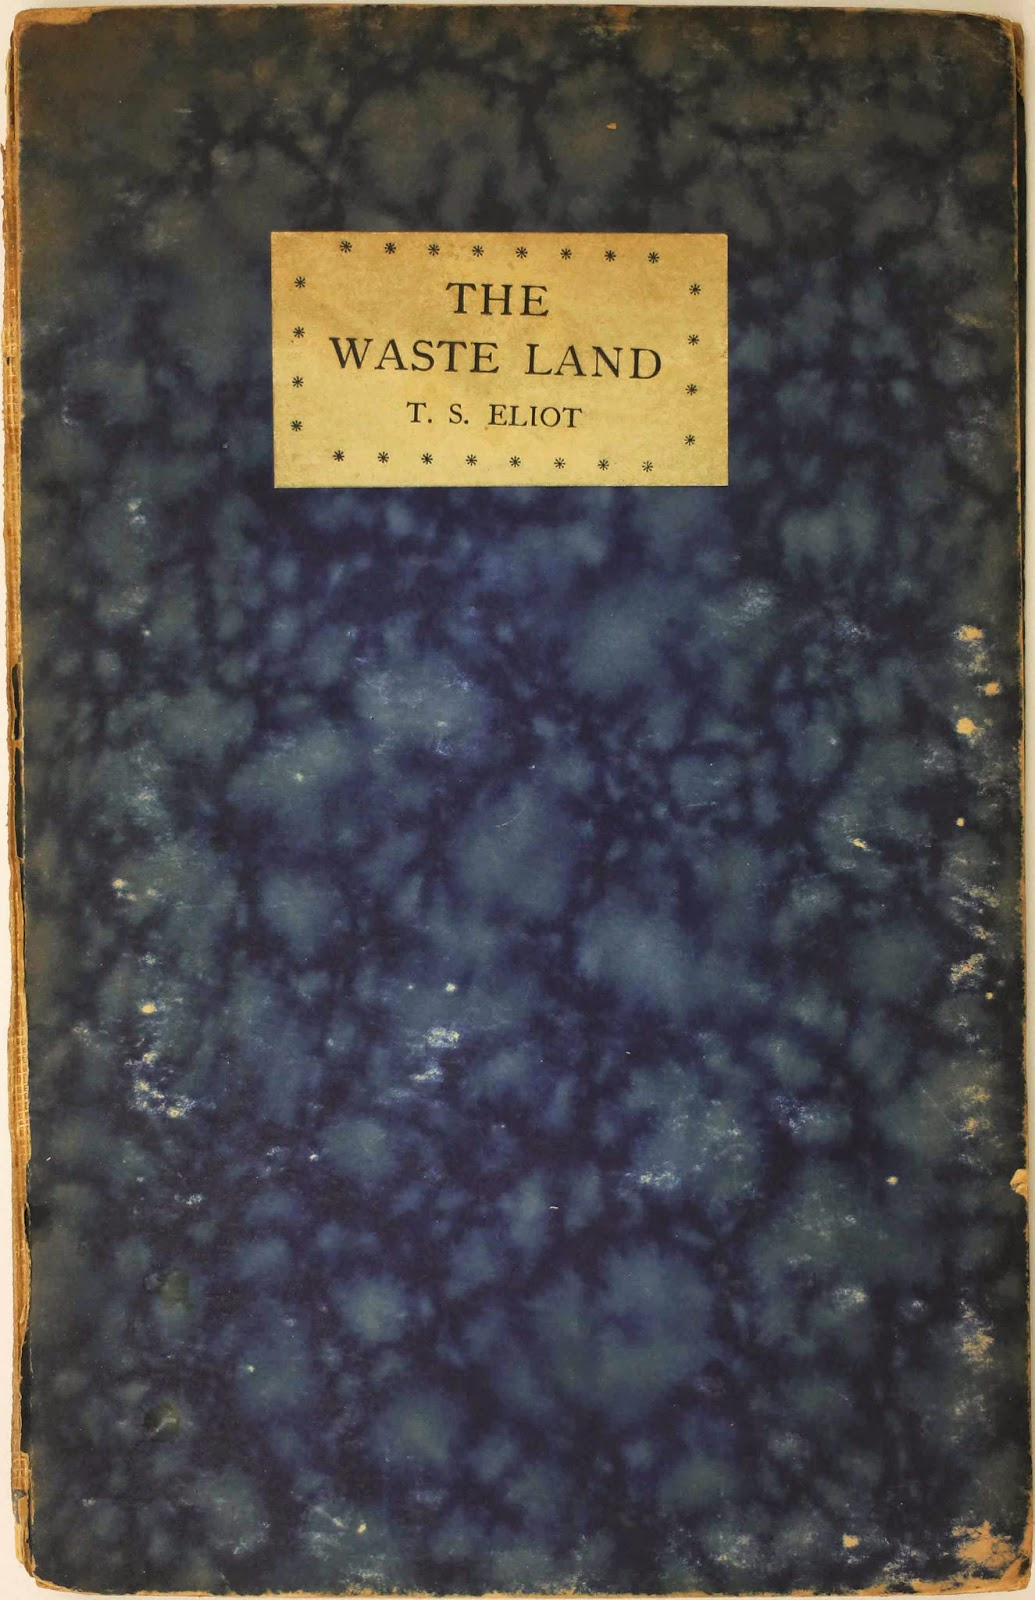 the multiple themes in ts eliots the waste land The waste land wasn't a poem shone in a positive light, and because of that, the society after the war, from what eliot described, was a waste land and there was no simple way to return to the normalcy state.